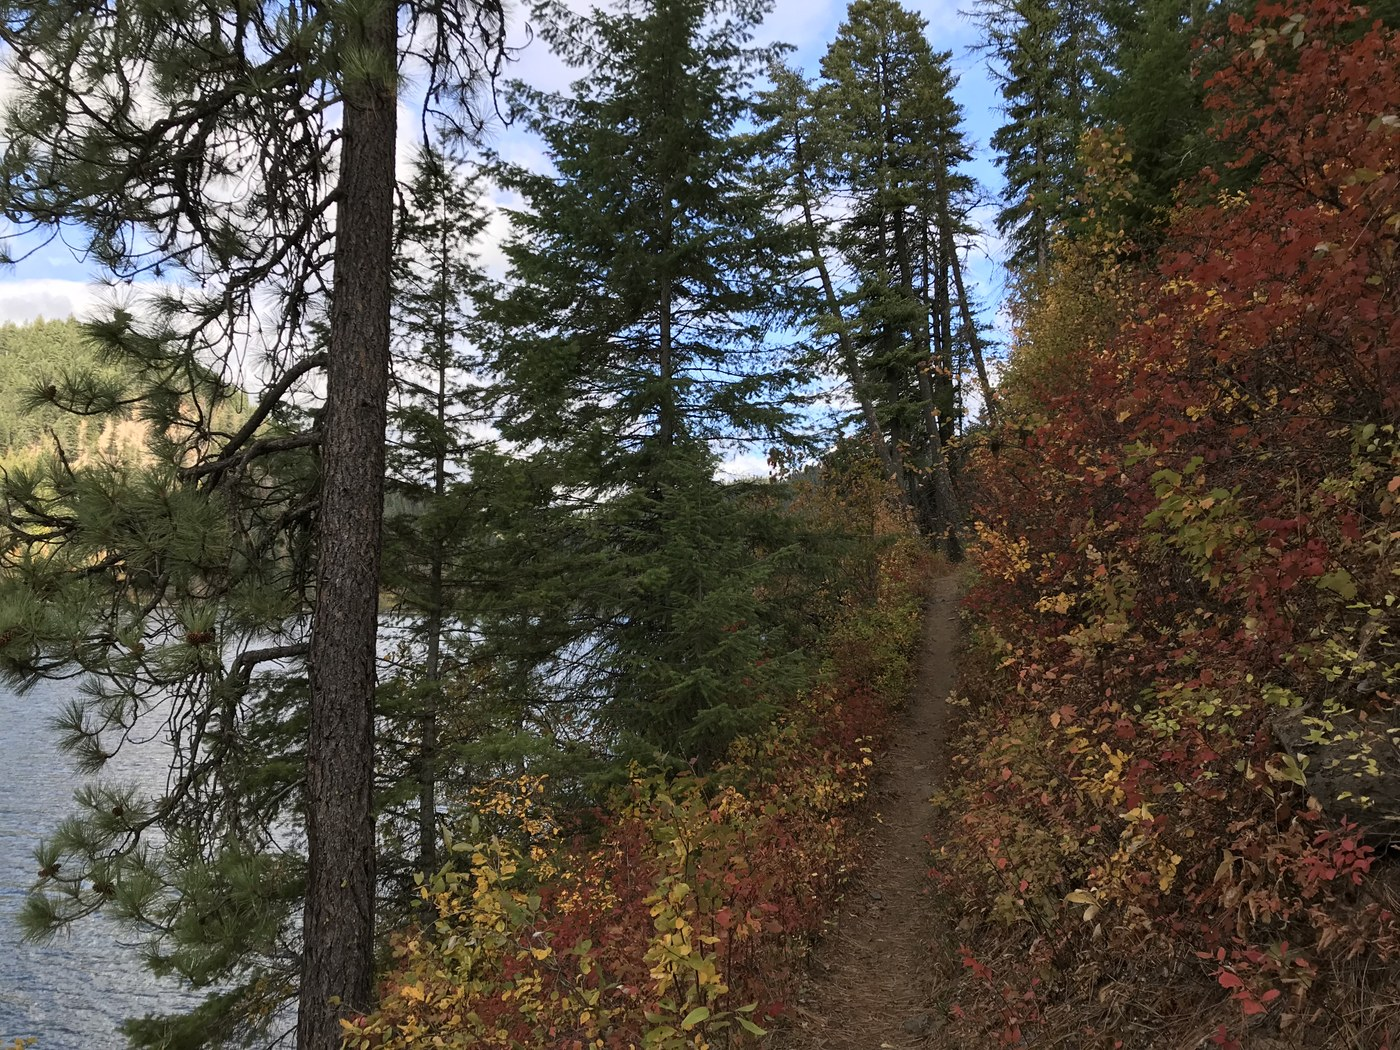 Fall colors surround the Bead Lake trail, the lake itself in the distance.